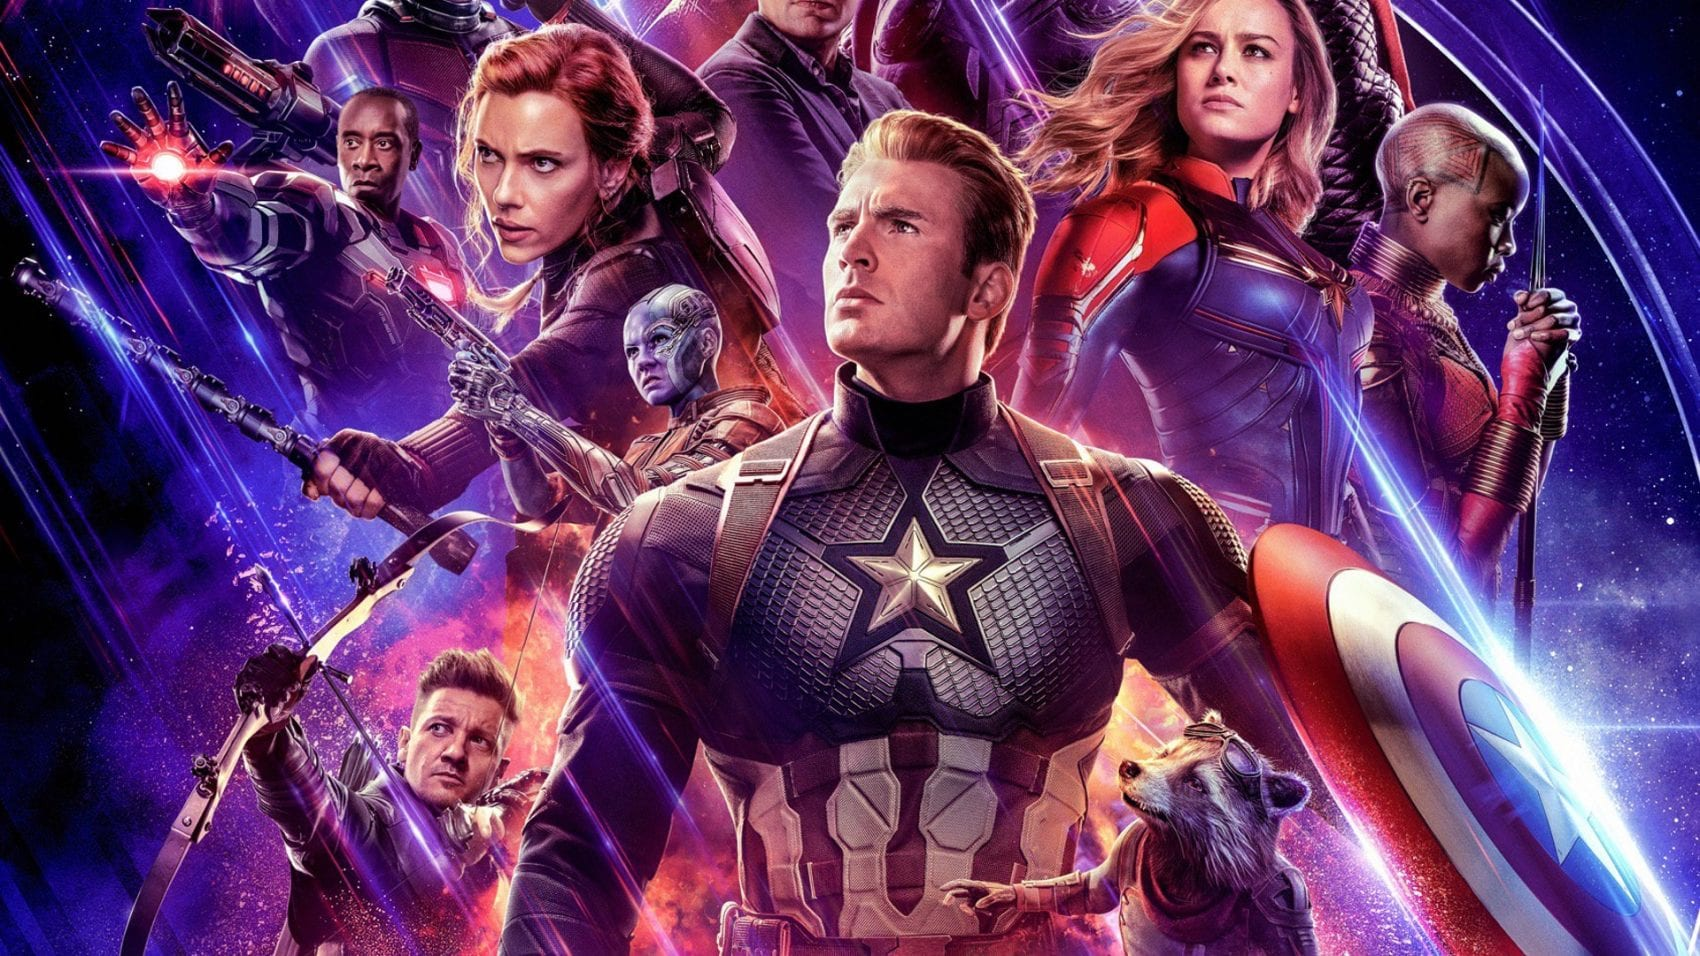 REVIEW – Avengers: Endgame